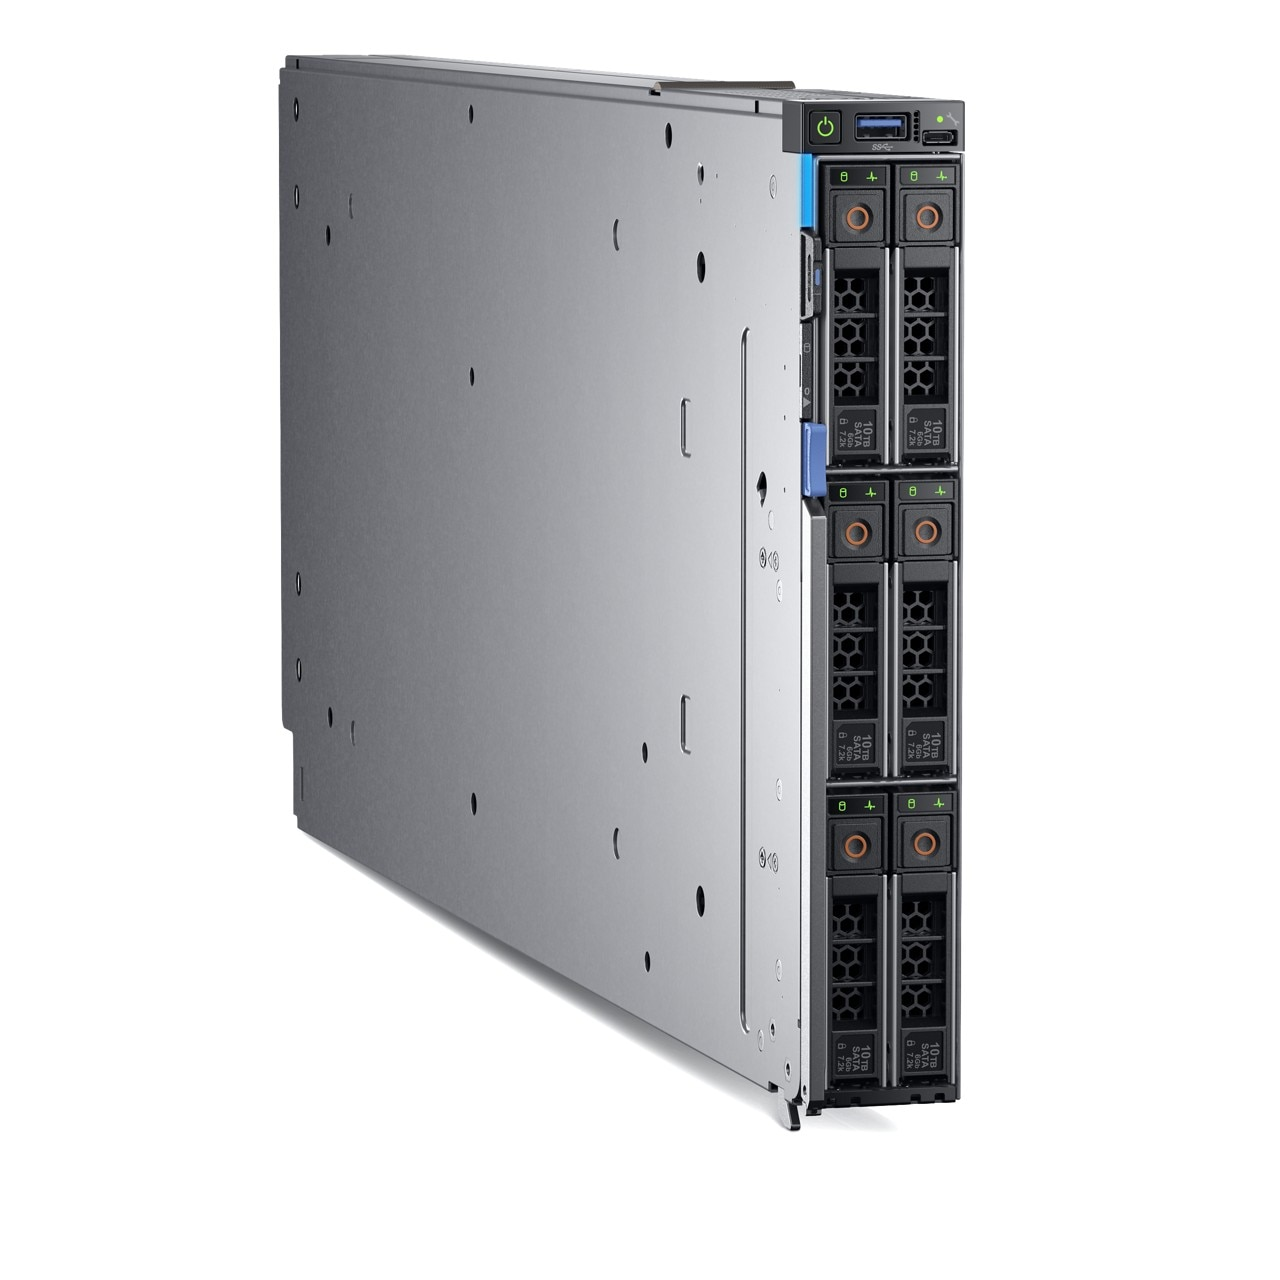 PowerEdge MX740C